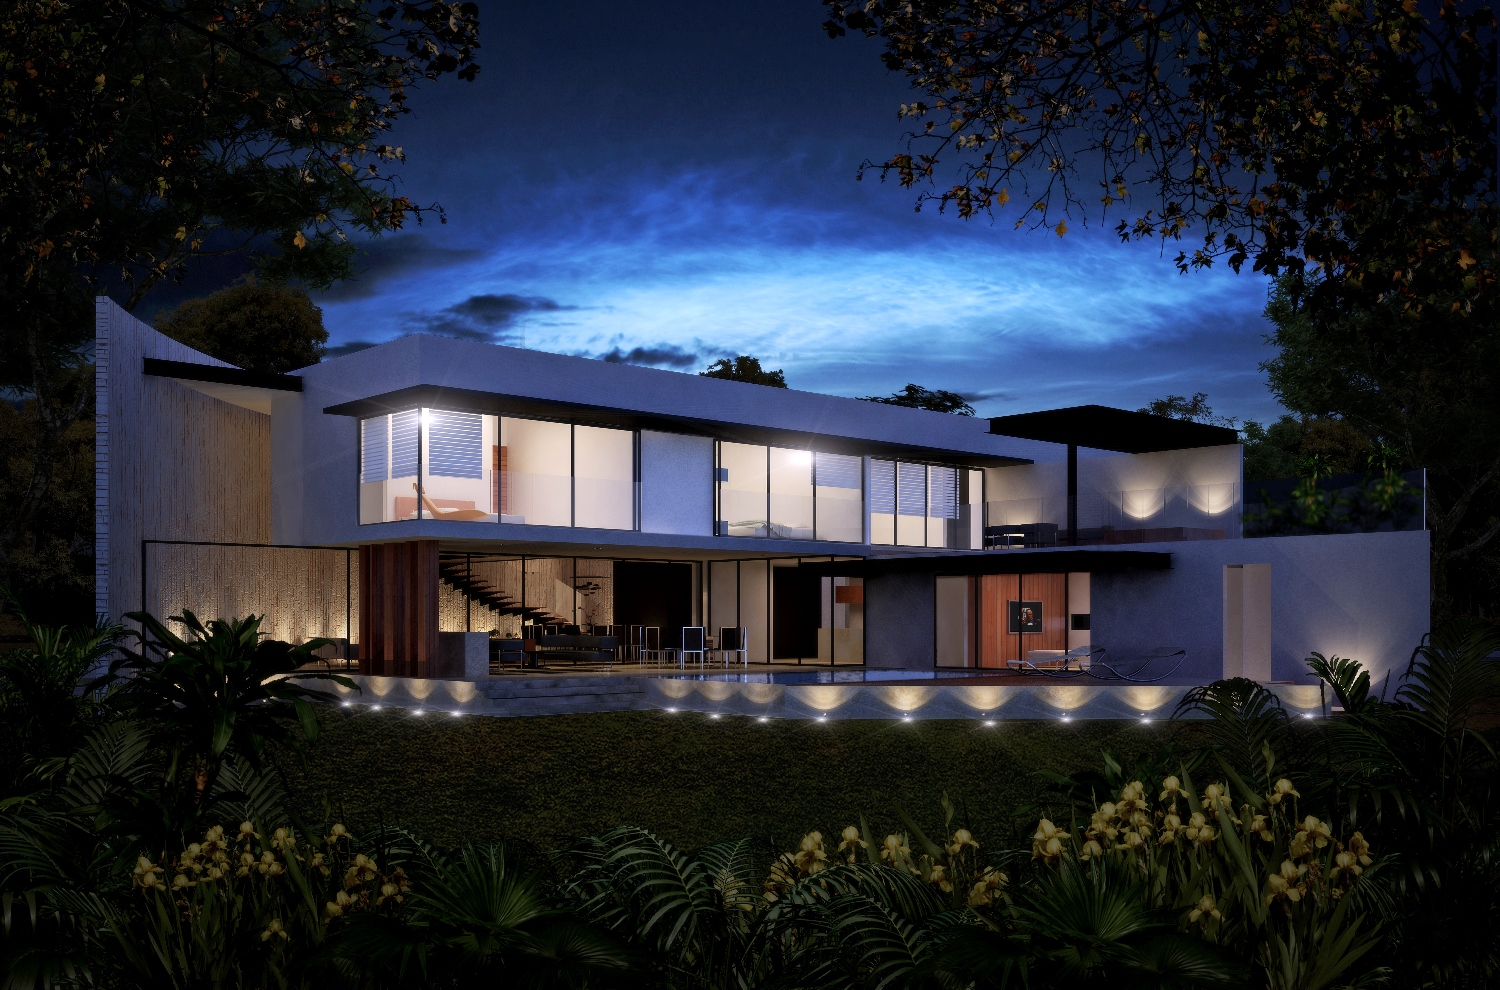 Panoramic night rear facade